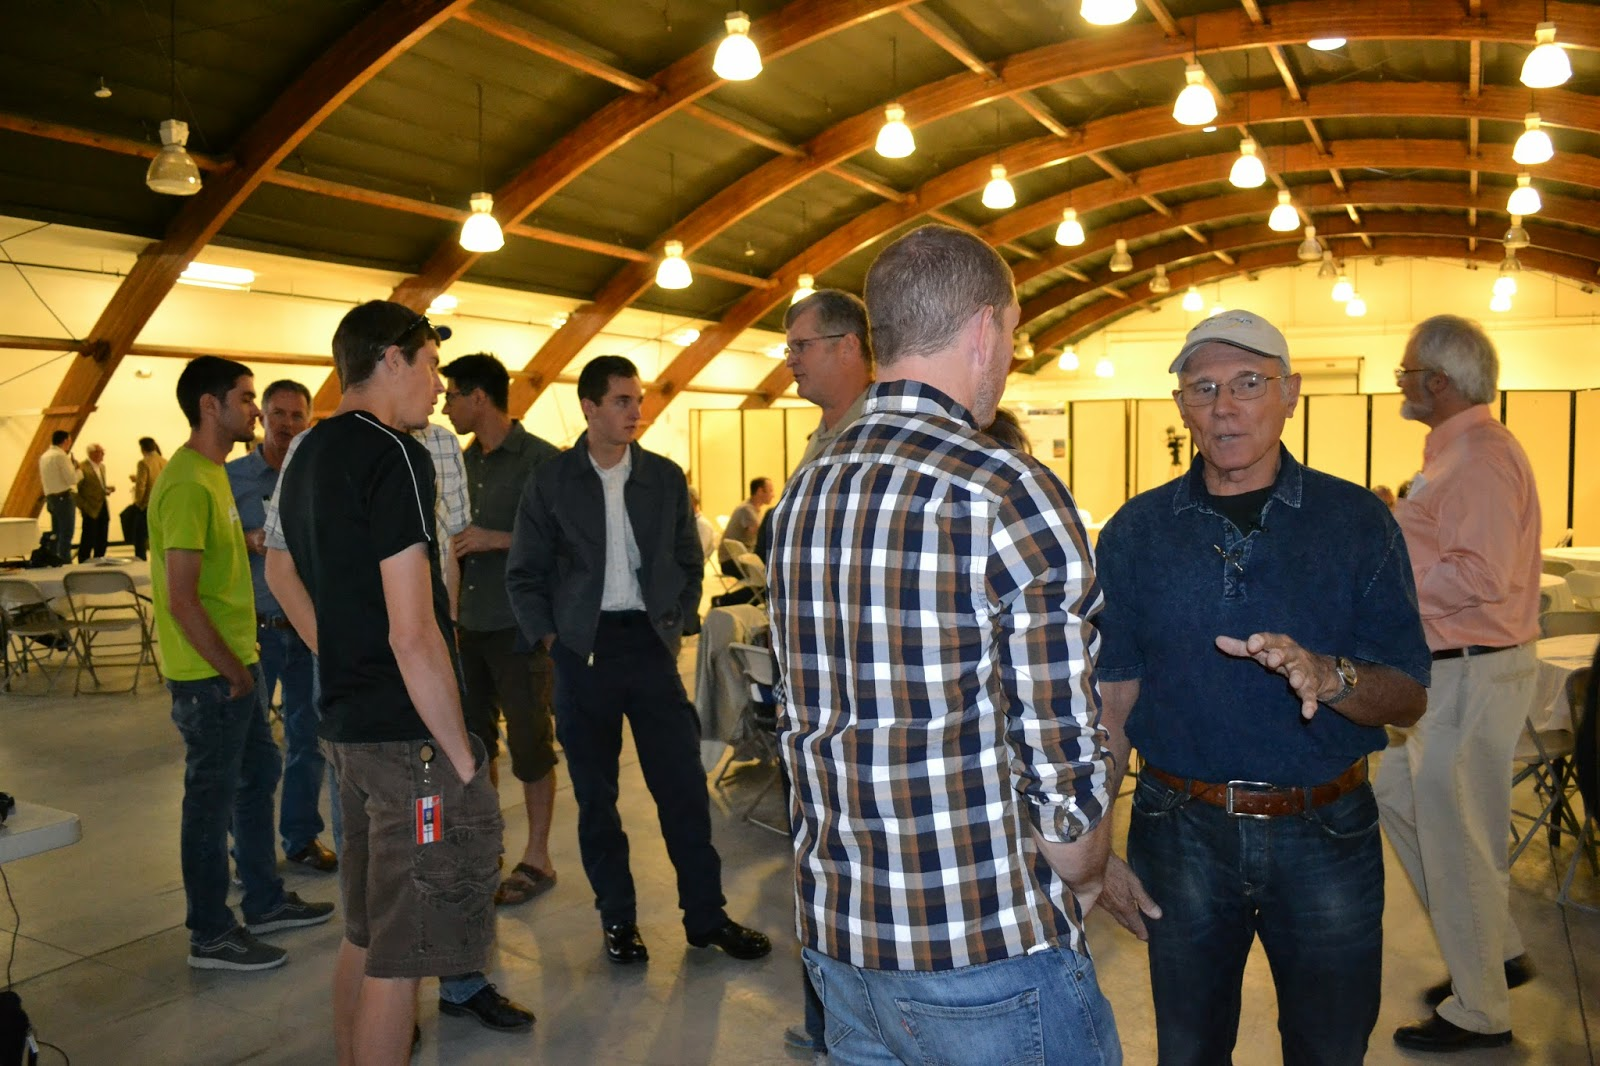 MEFI is still small, informal, and the highest concentration of brainy airplane geeks I've run into. At least half of the people in this picture are engineers or test pilots. Astronaut Mike Melvill, on the far right facing the camera, gave a fascinating speech covering the major Scaled Composites projects he worked on during his 32 years as a test pilot for Burt Rutan. Photo: Jenny Carreon.